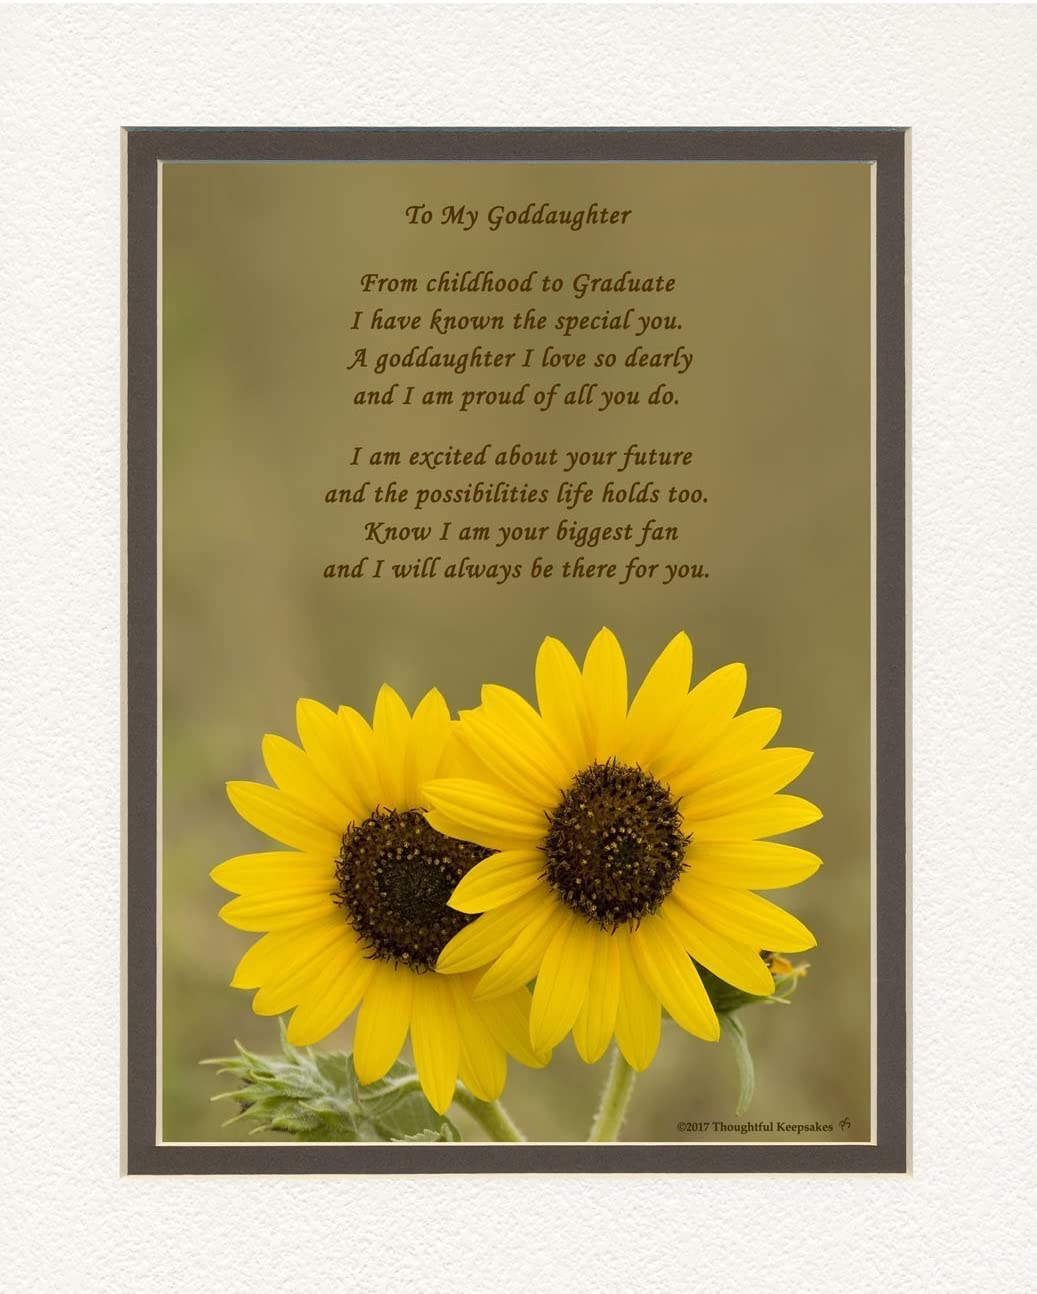 Goddaughter Graduation Gift, Sunflowers Photo with From Childhood to Graduate Poem, 8x10 Double Matted. Special Keepsake Graduation Gifts for Goddaughter, Unique College - High School Grad Gifts